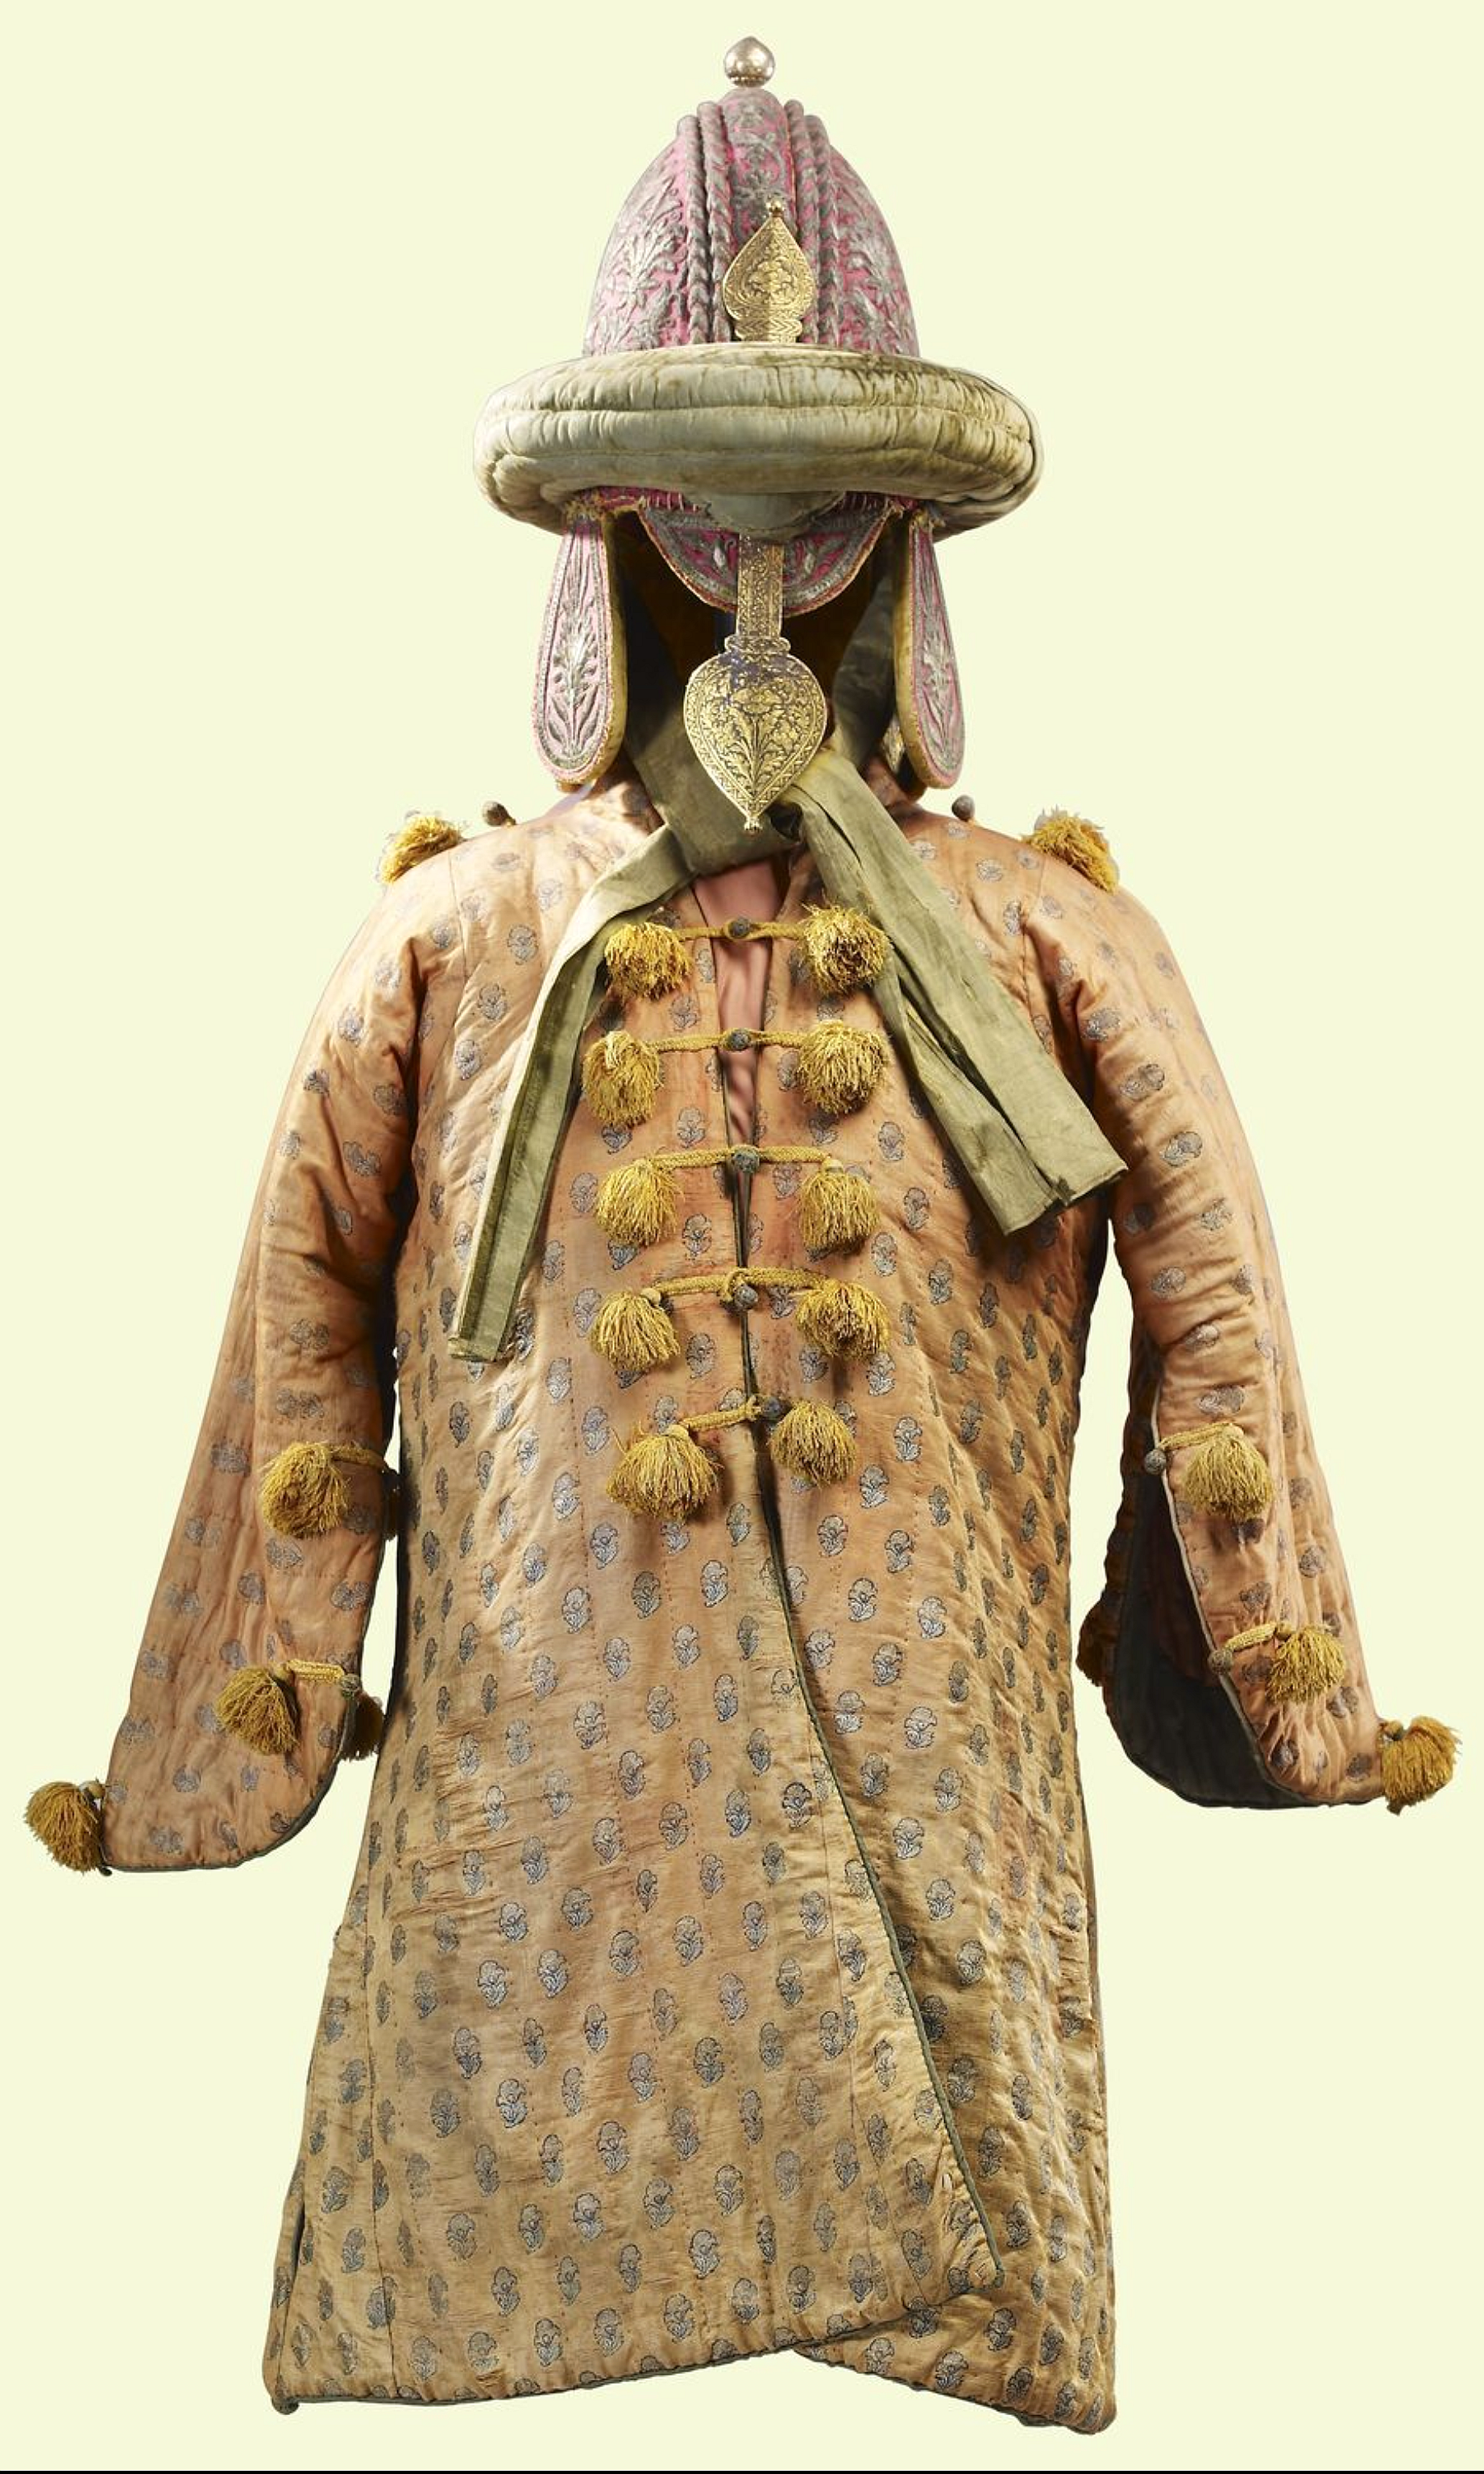 Indian (Mysore) peti (quilted armor), c.1790, belonging to Tipu Sultan (The  Tiger of Mysore), looted by British forces from his palace/fortress ...